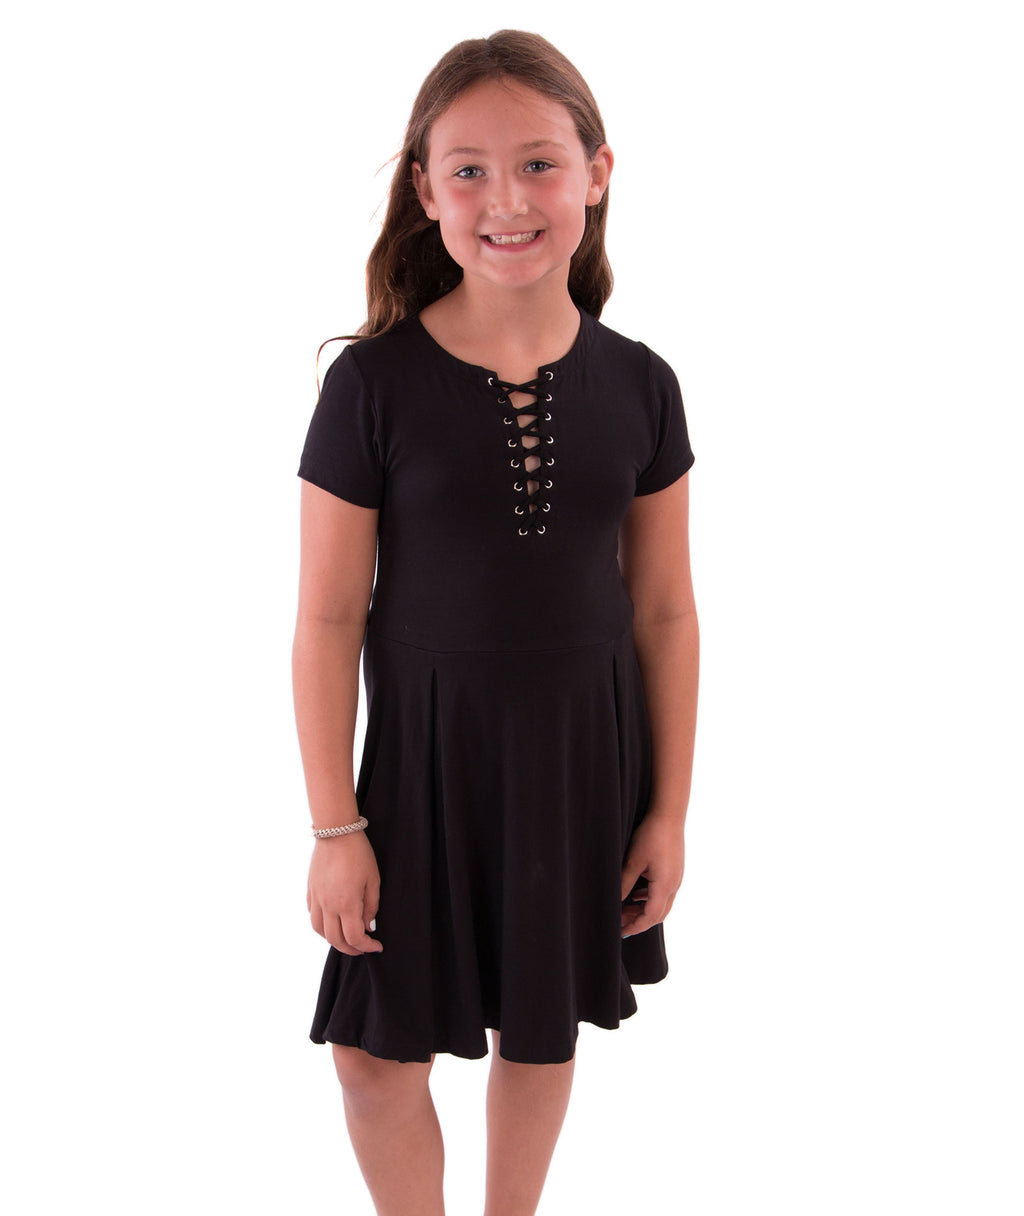 Flowers by Zoe Girls Black Lace Up Swing Dress - Frankie's on the Park